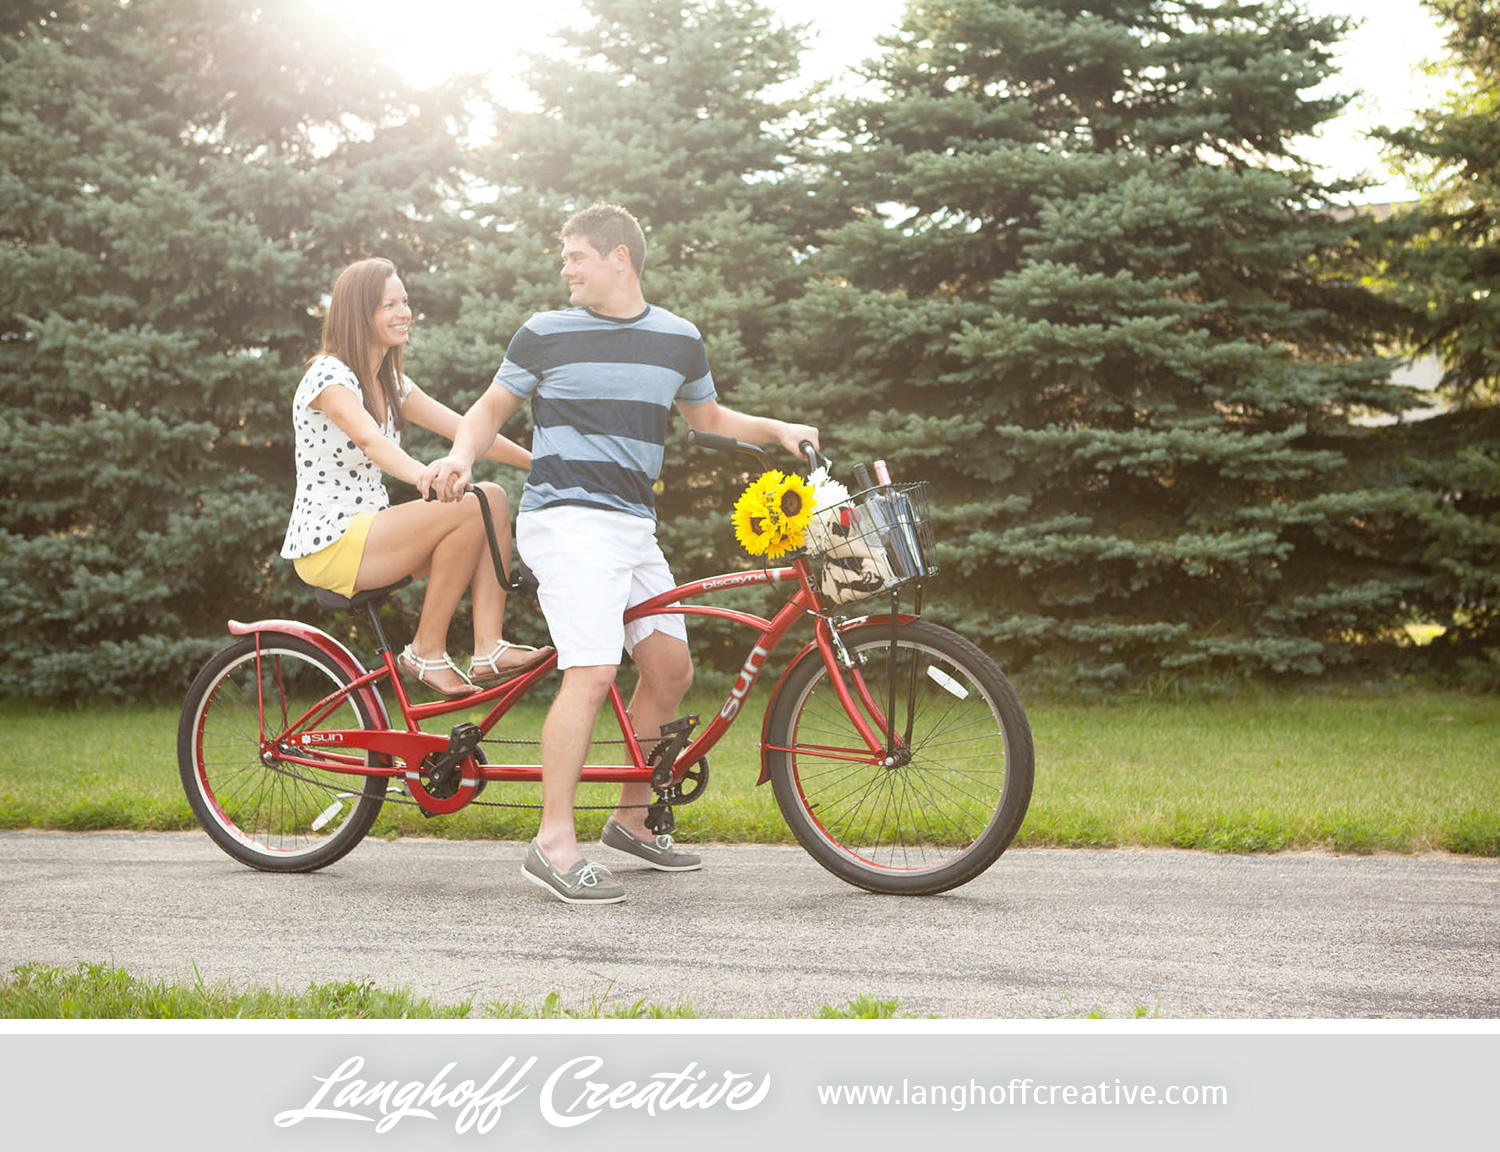 """Adam says that they enjoy lots of things together, namely running,going out to eat, having drinks, riding bikes and hanging out with family. Michelle added, """"We try to get together with them as much as possible. I feel so grateful and thankful that we both have wonderful, loving families that we enjoy spending time with."""""""